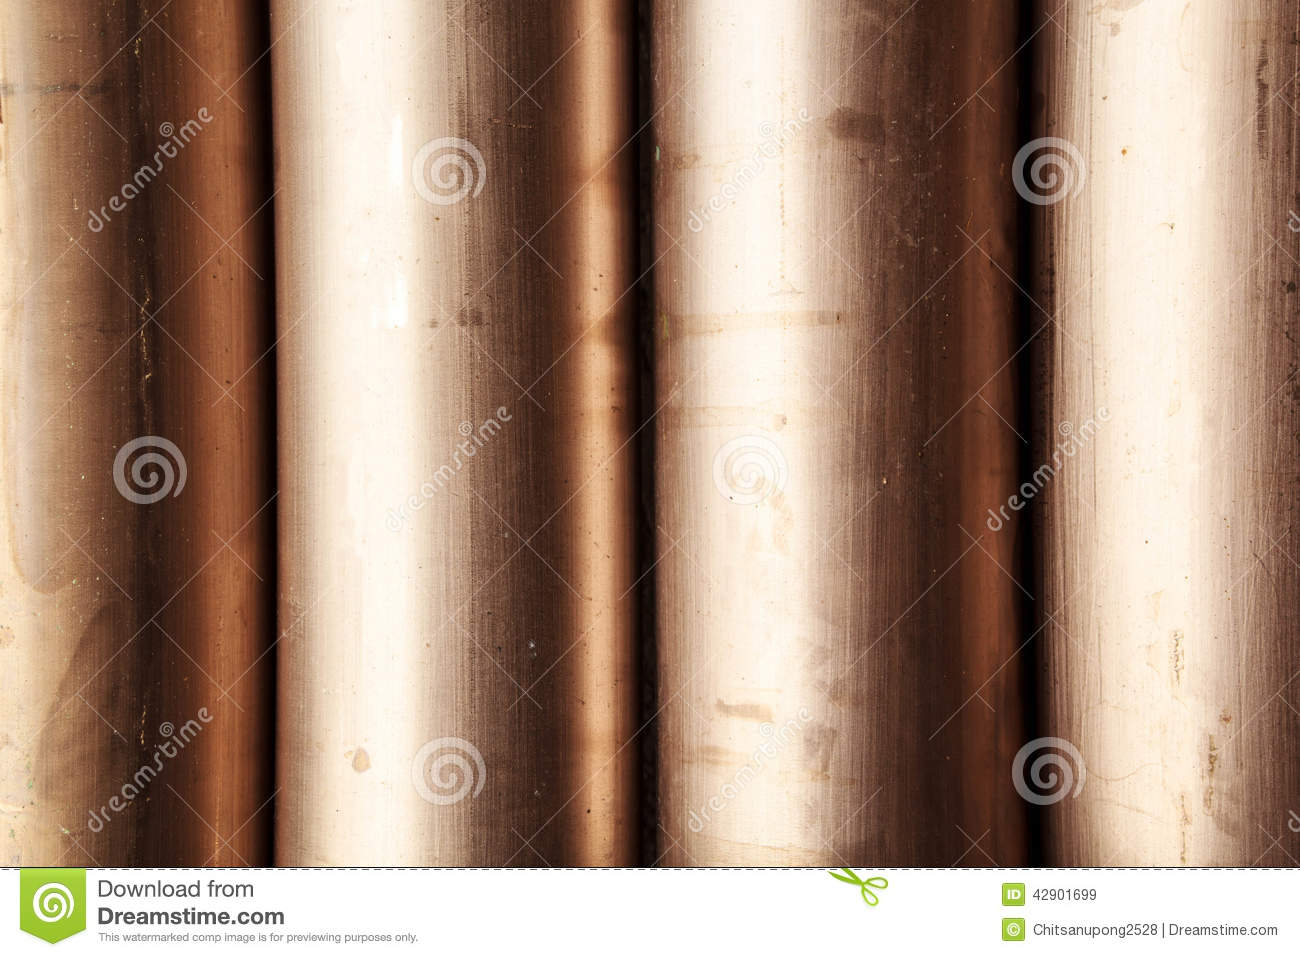 Copper nickel alloy pipe stock photo image